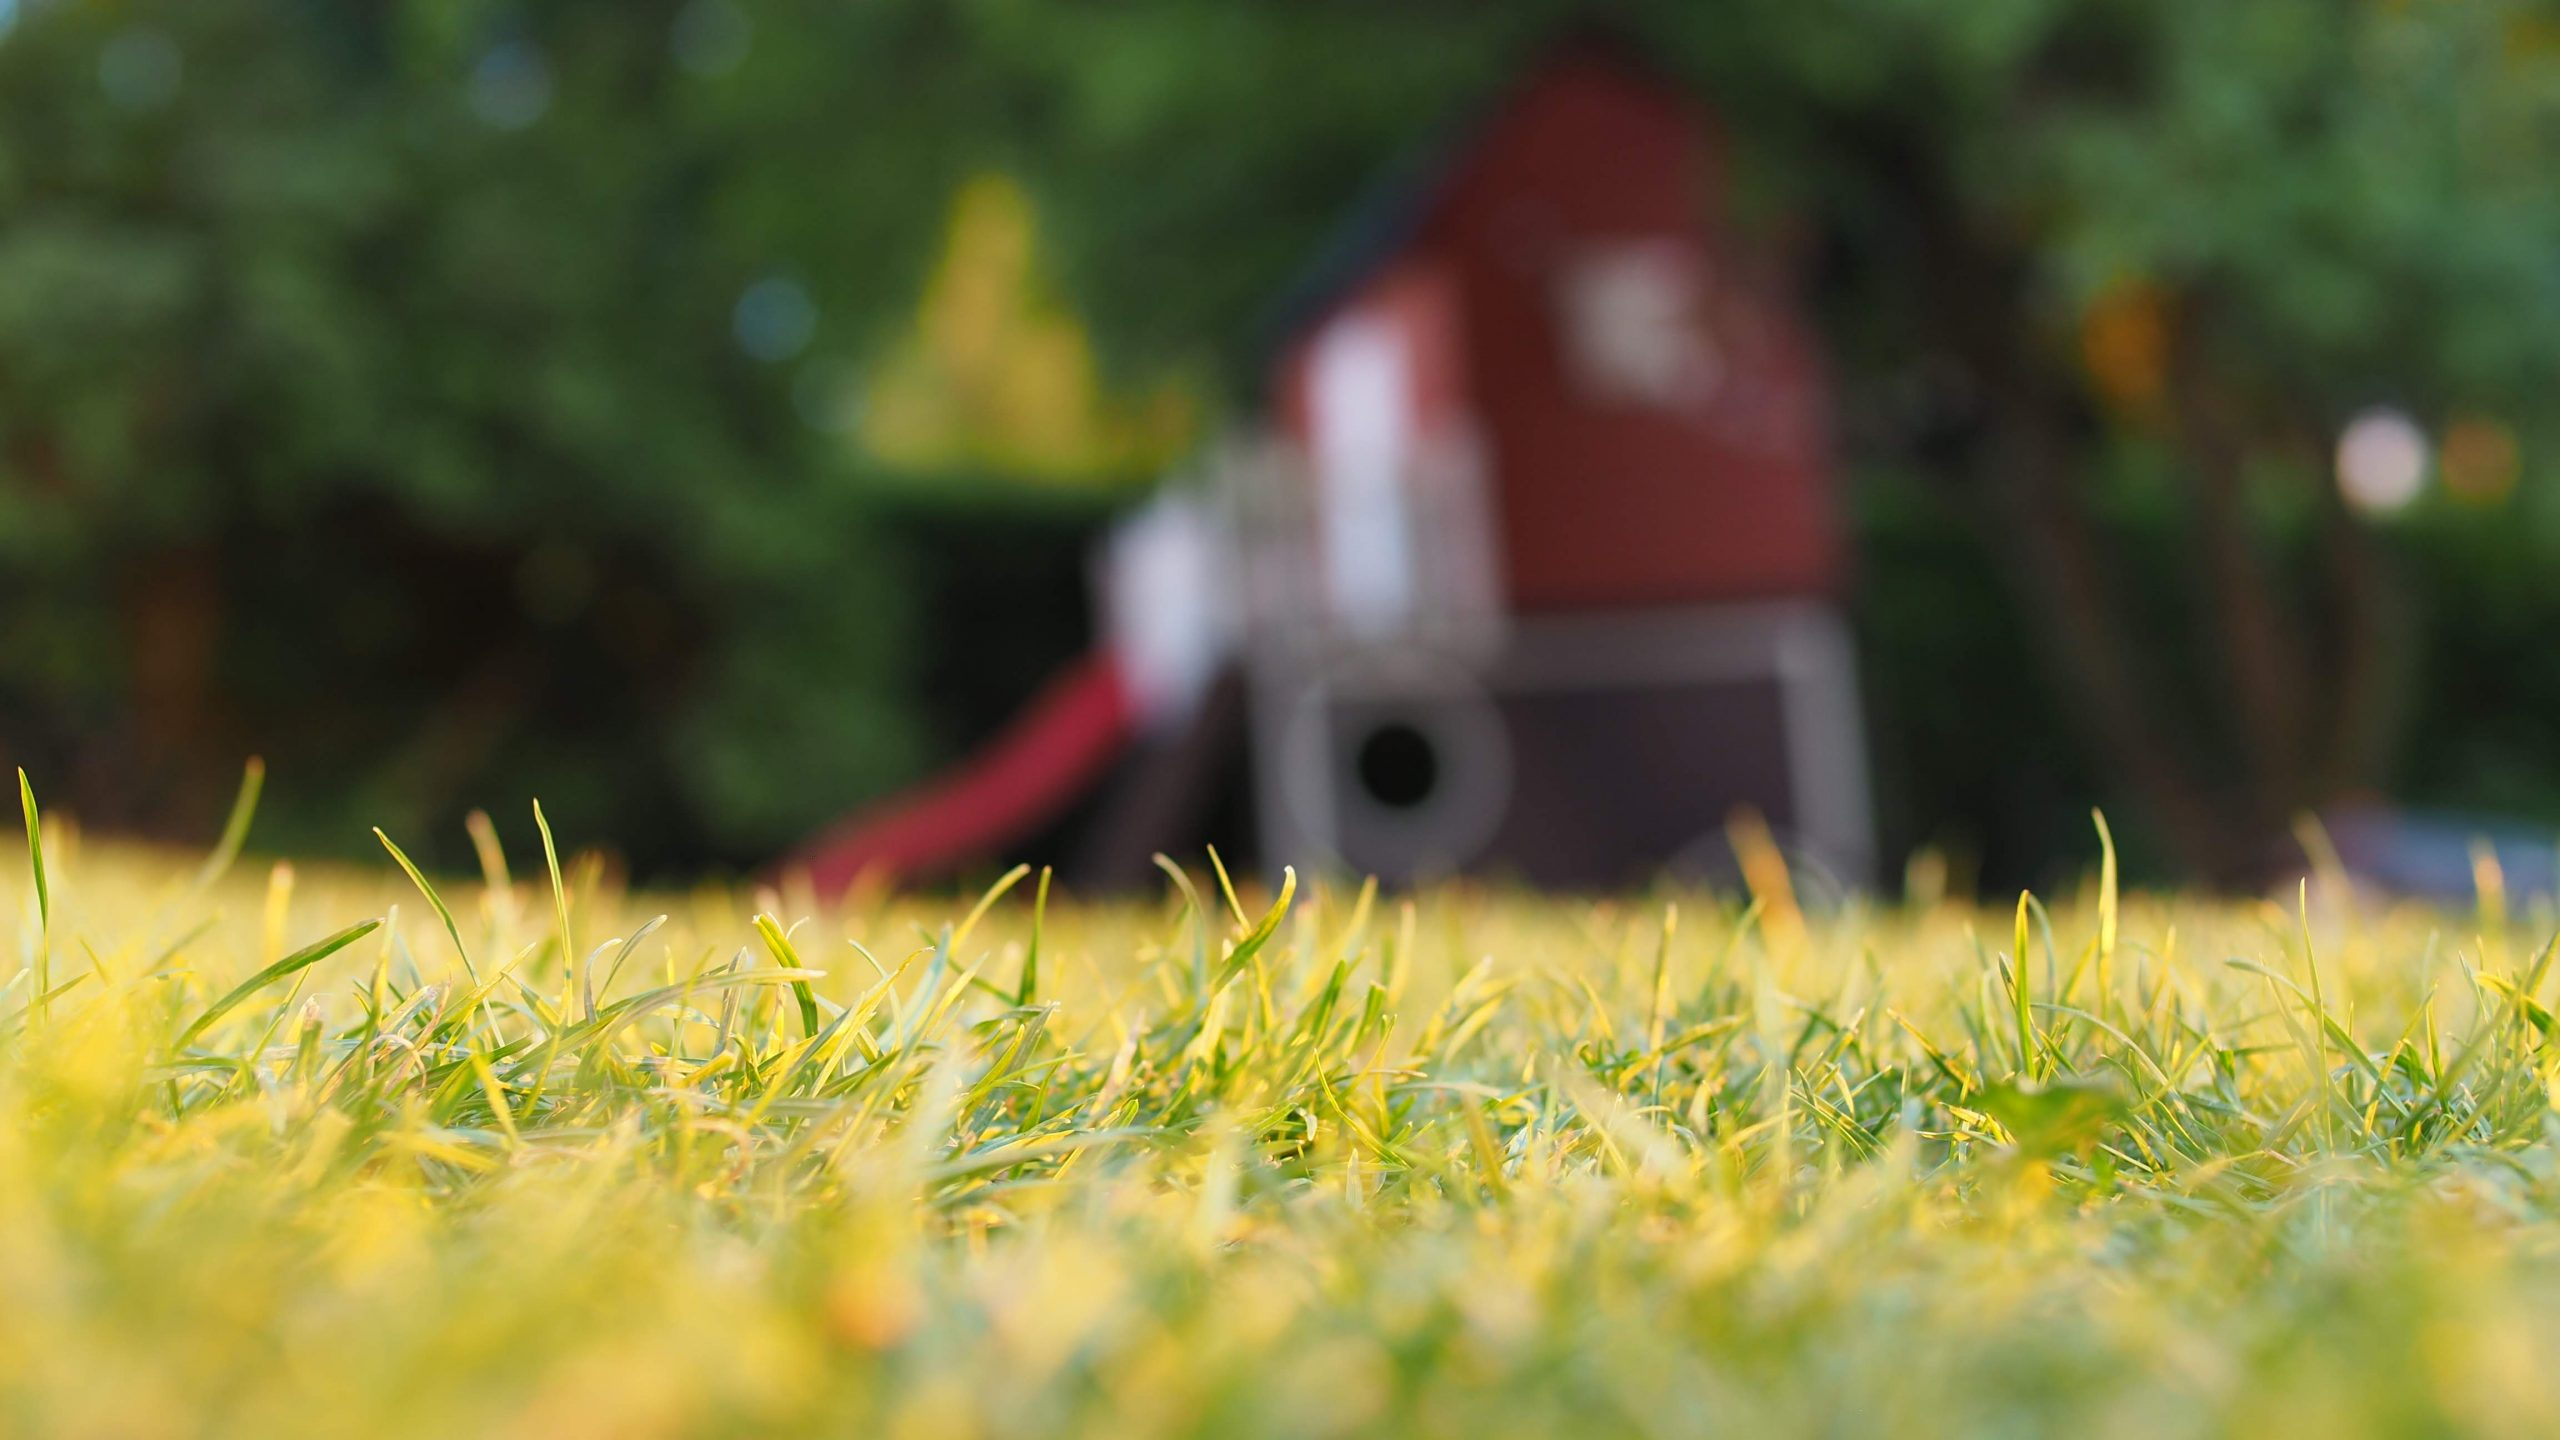 best local lawn care company in Rossville mowing the lawn